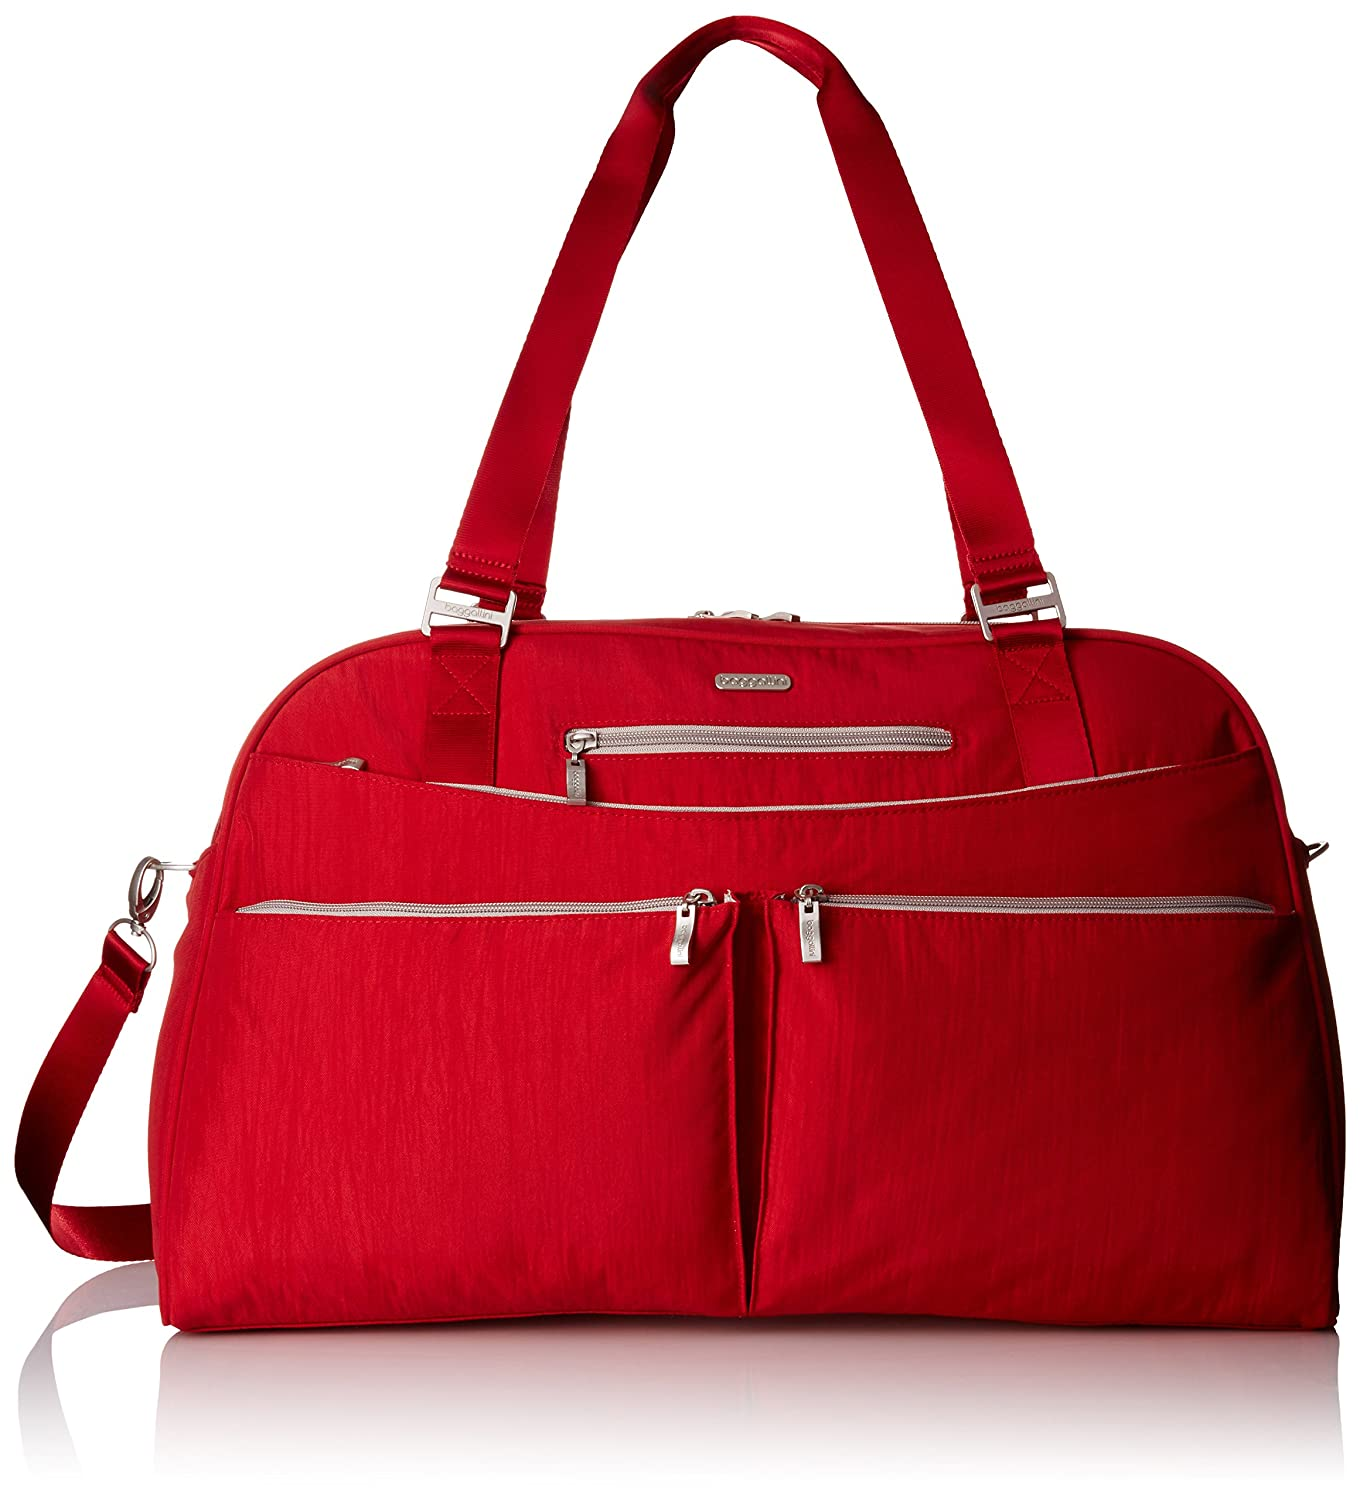 Amazon.com: Baggallini Weekender Travel Tote Bag, Apple, One Size:  Baggallini: Shoes